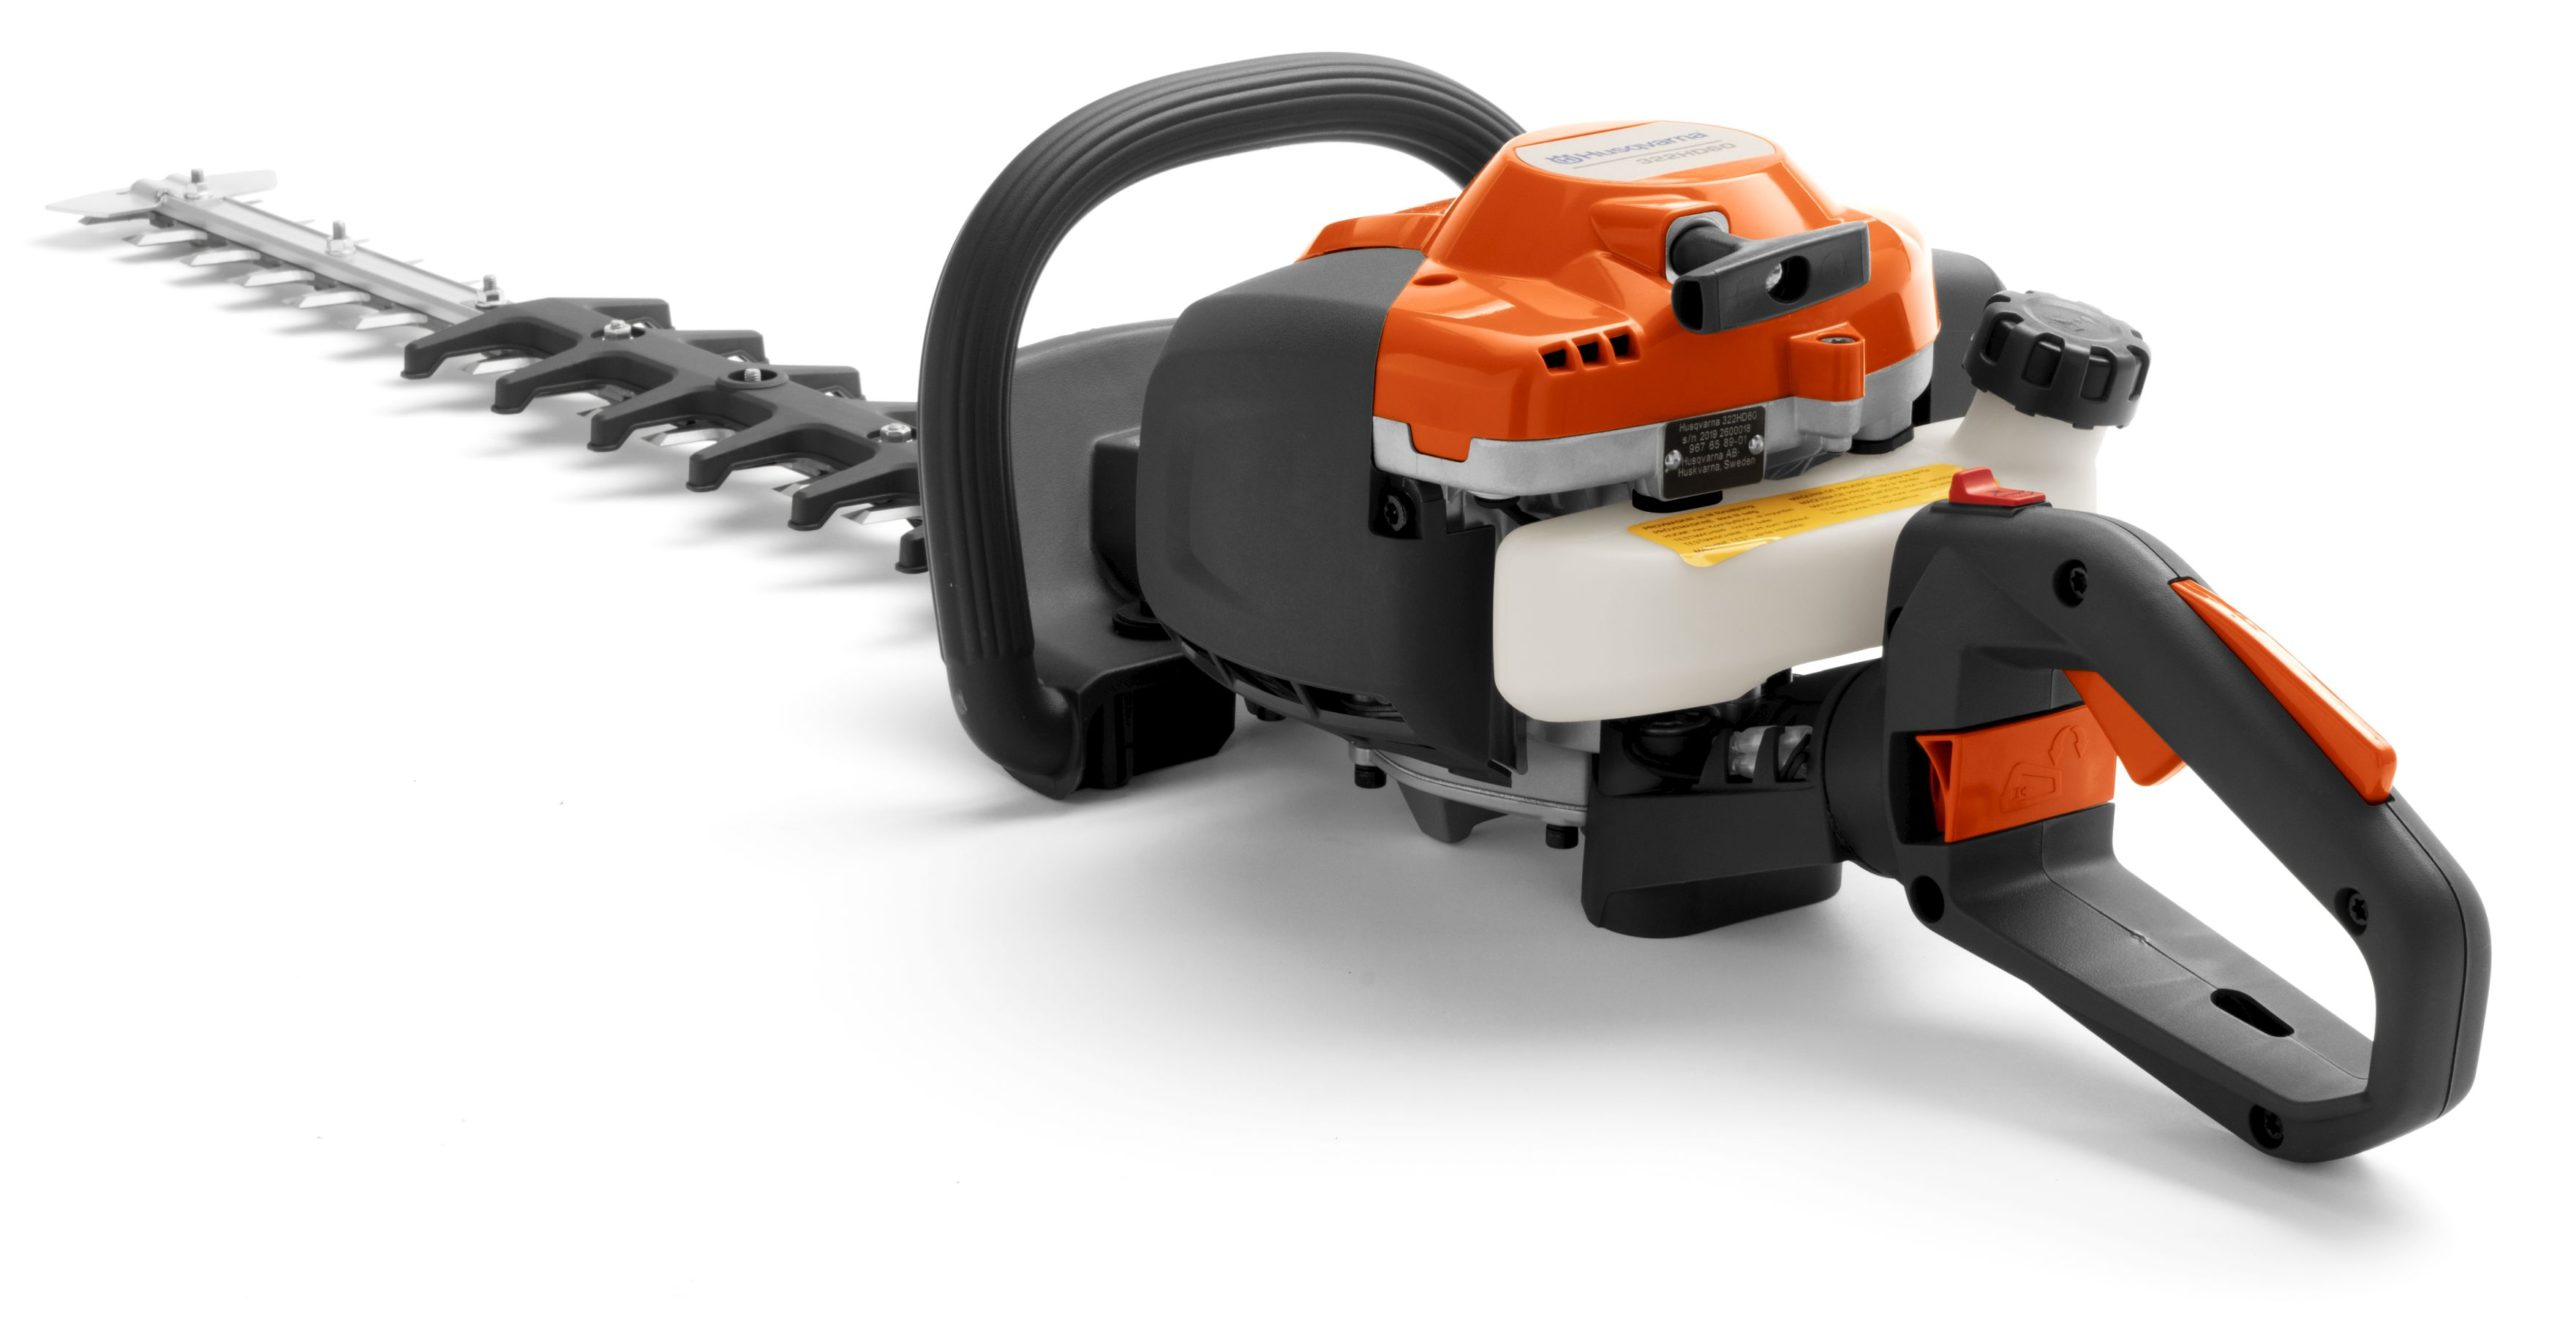 HUSQVARNA HEDGE TRIMMER Image